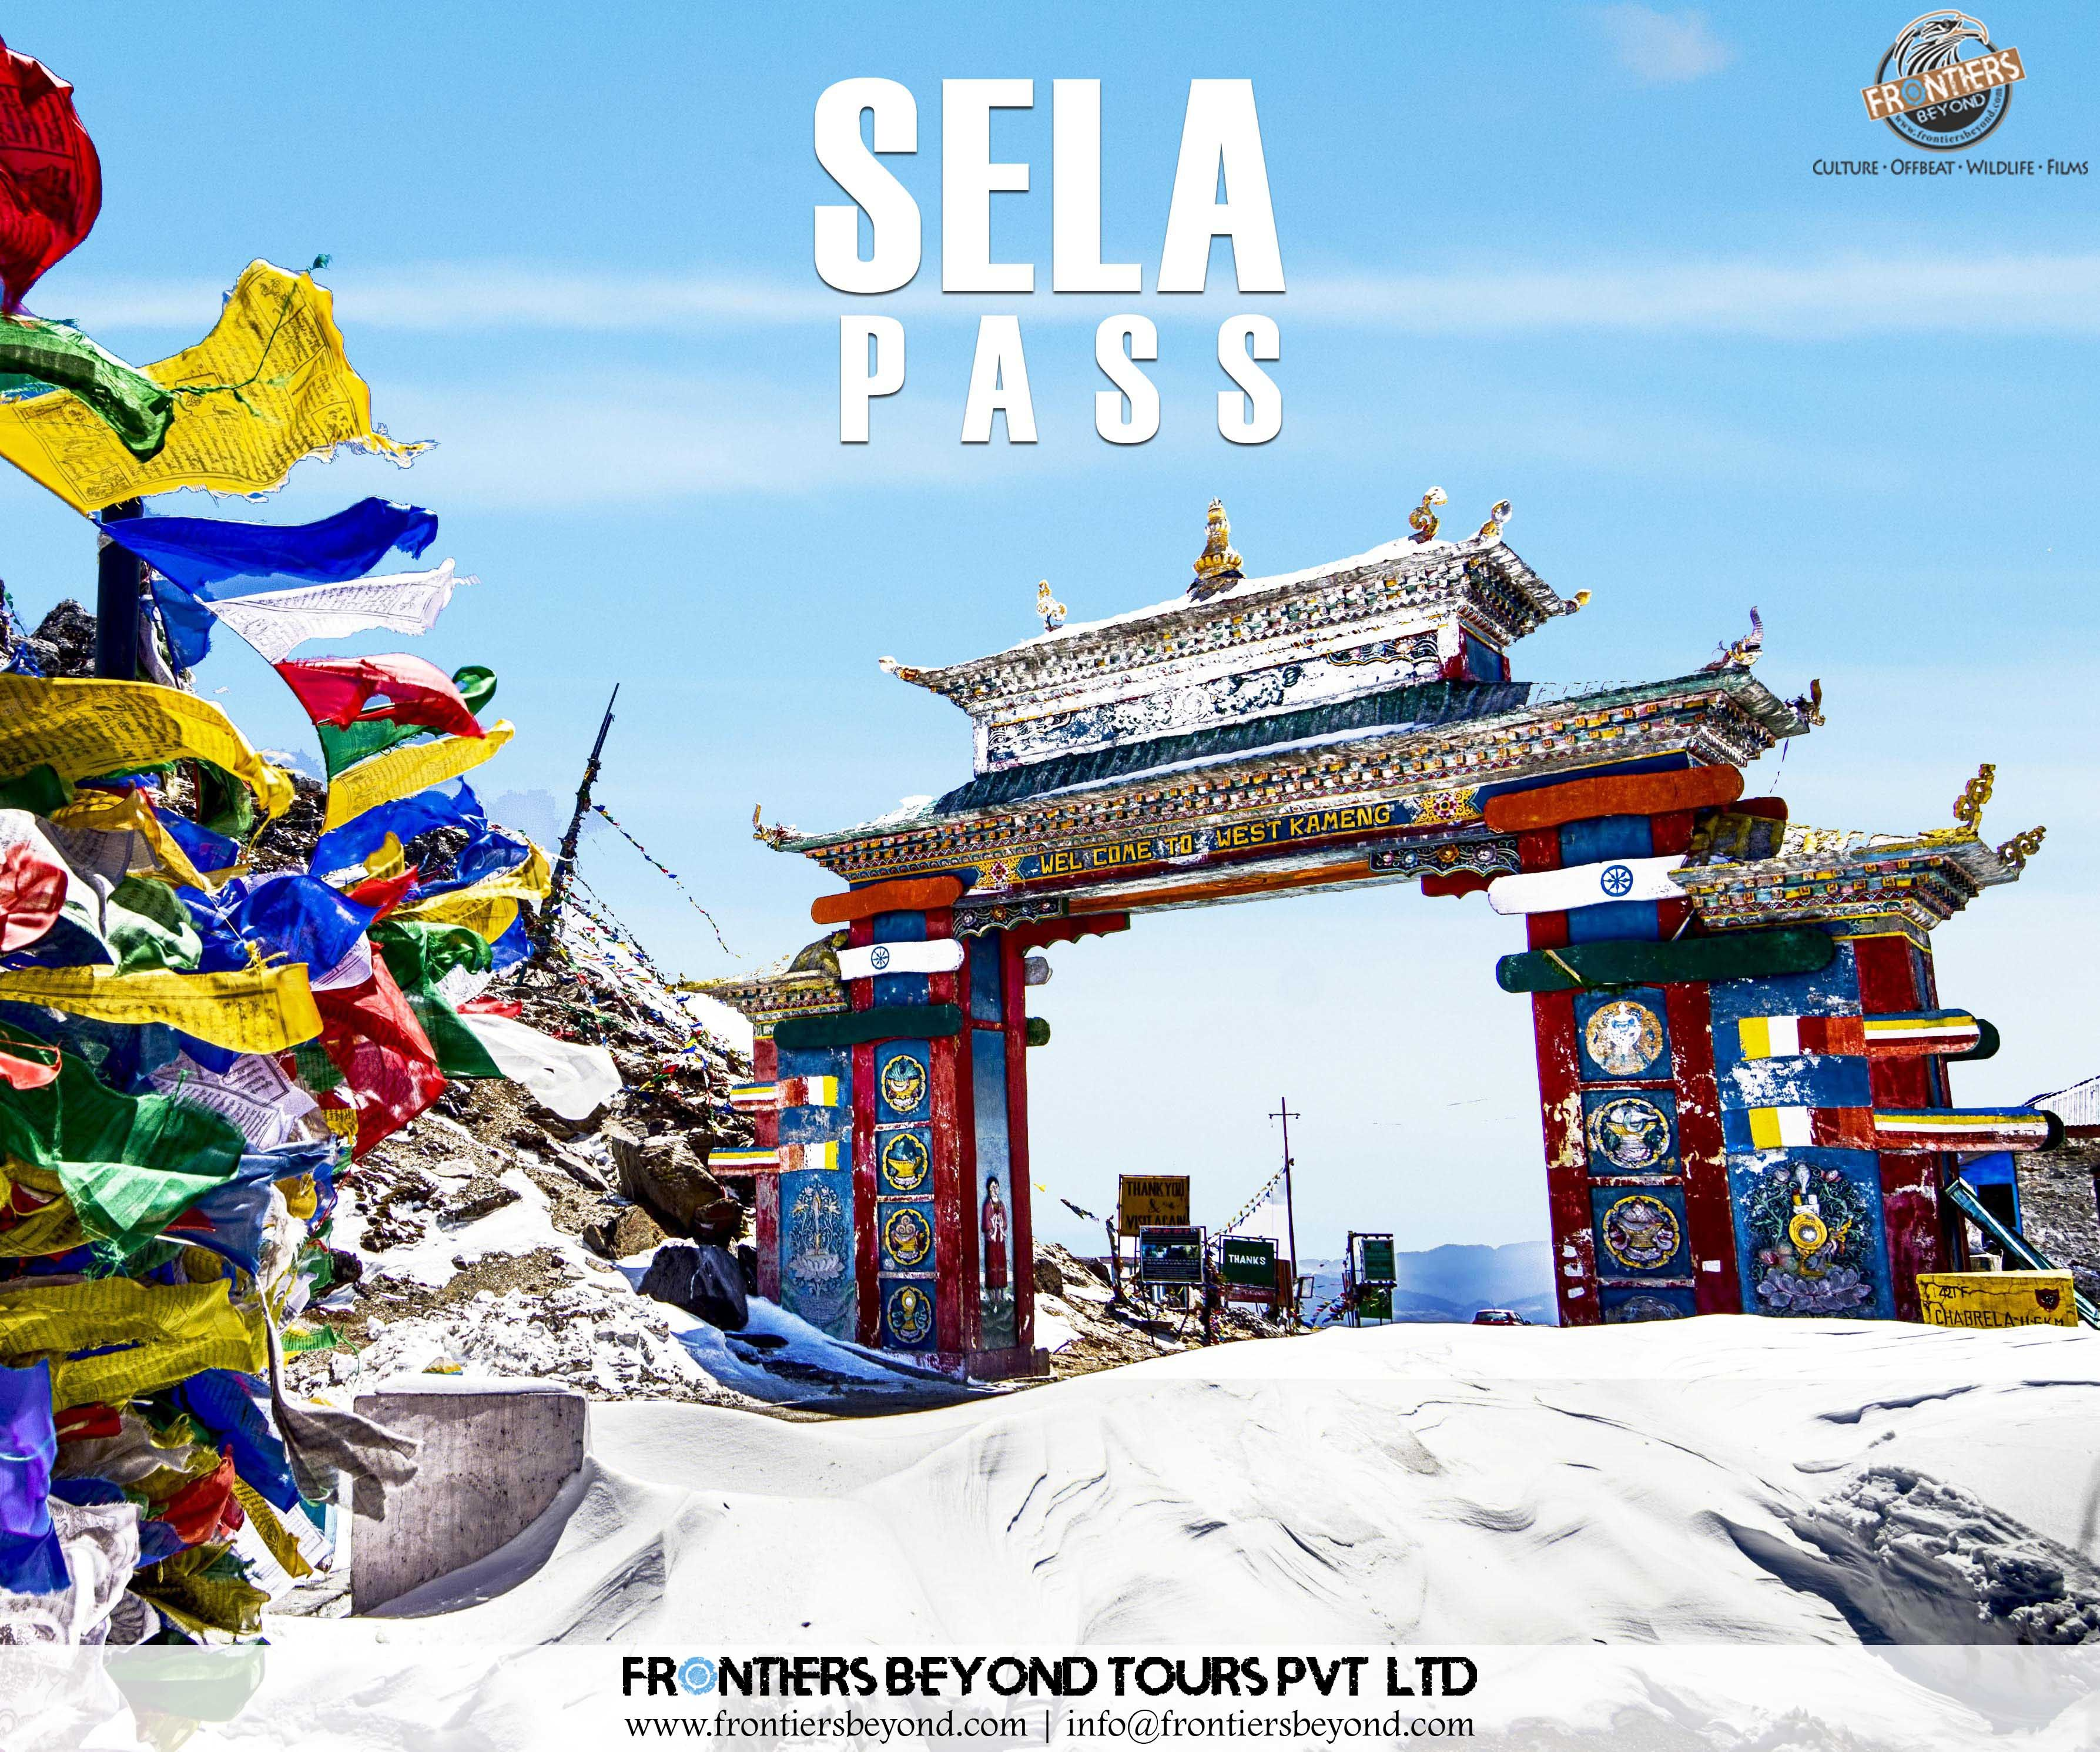 Sela pass is a highaltitude mountain pass situated at